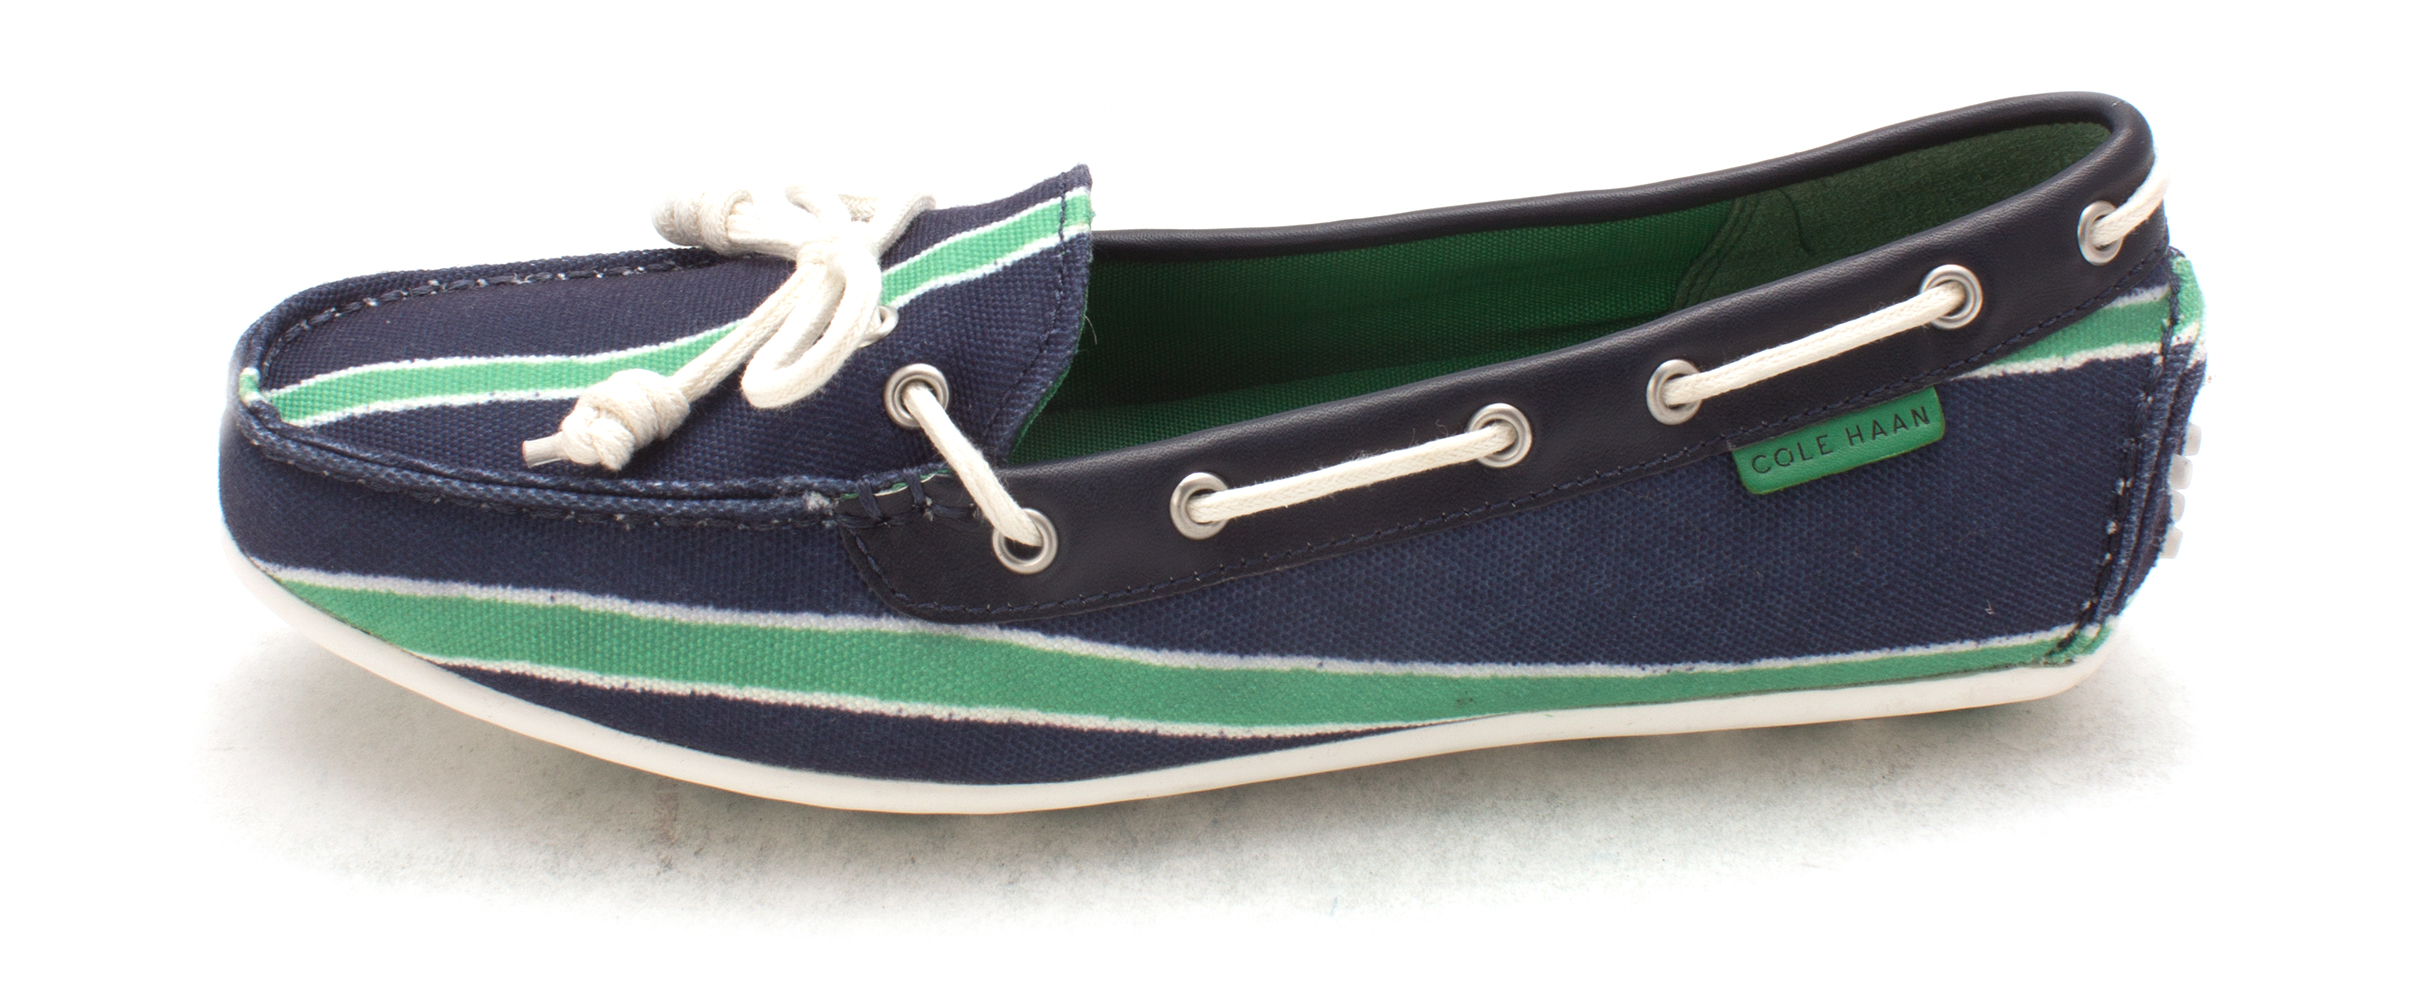 Cole Haan Womens Yeddasam Closed Toe Boat Shoes, Blue/Green Stripe, Size 6.0